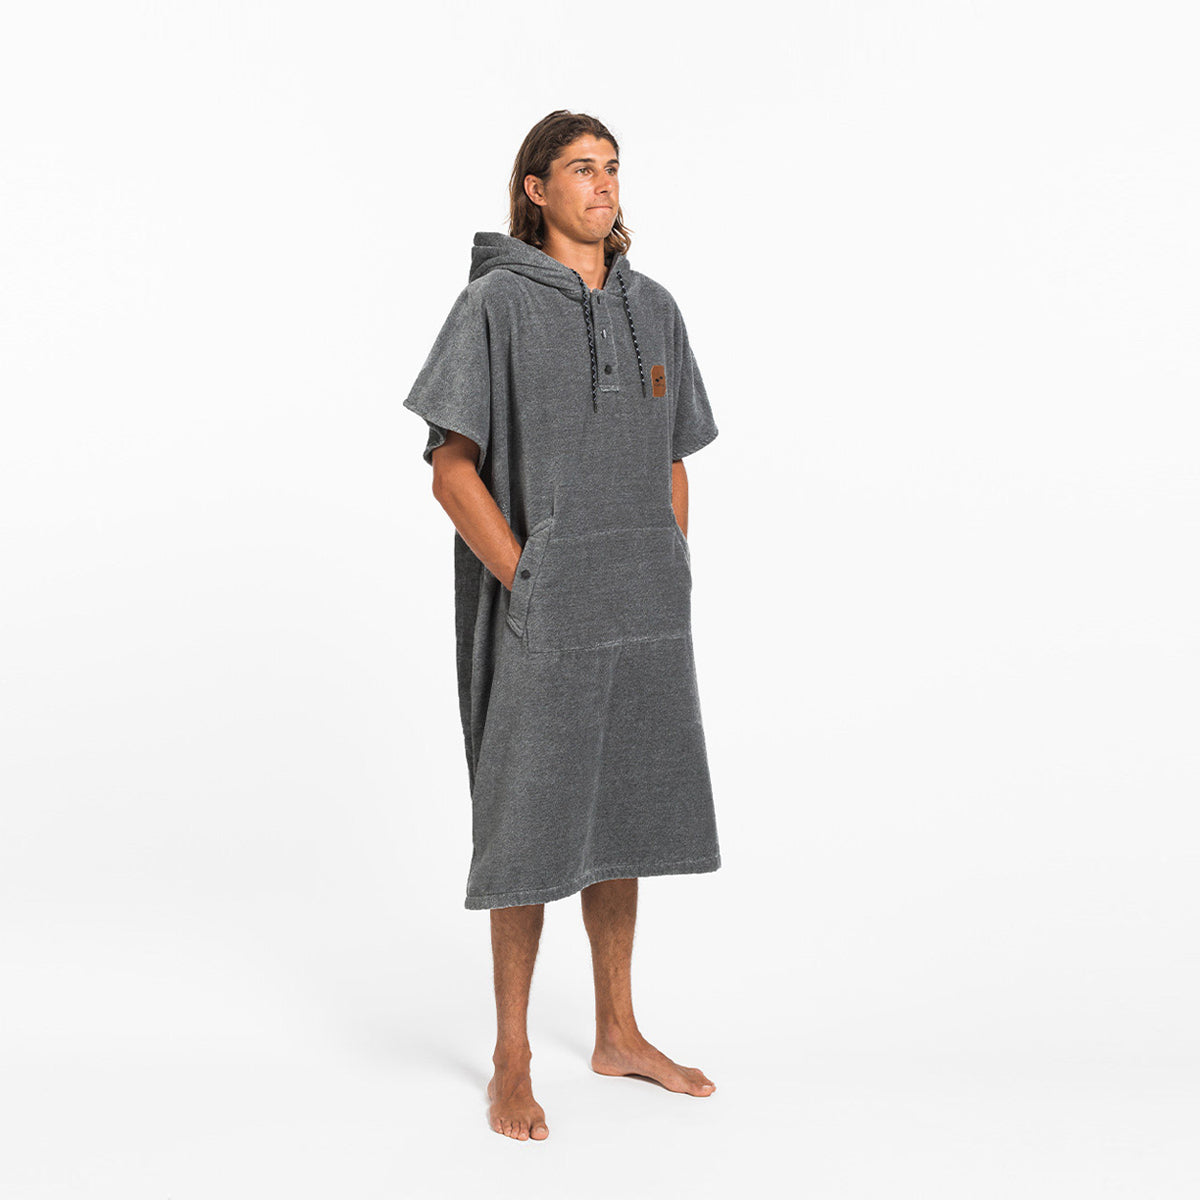 The Digs Changing Poncho - Heather Grey - L/XL - Slowtide